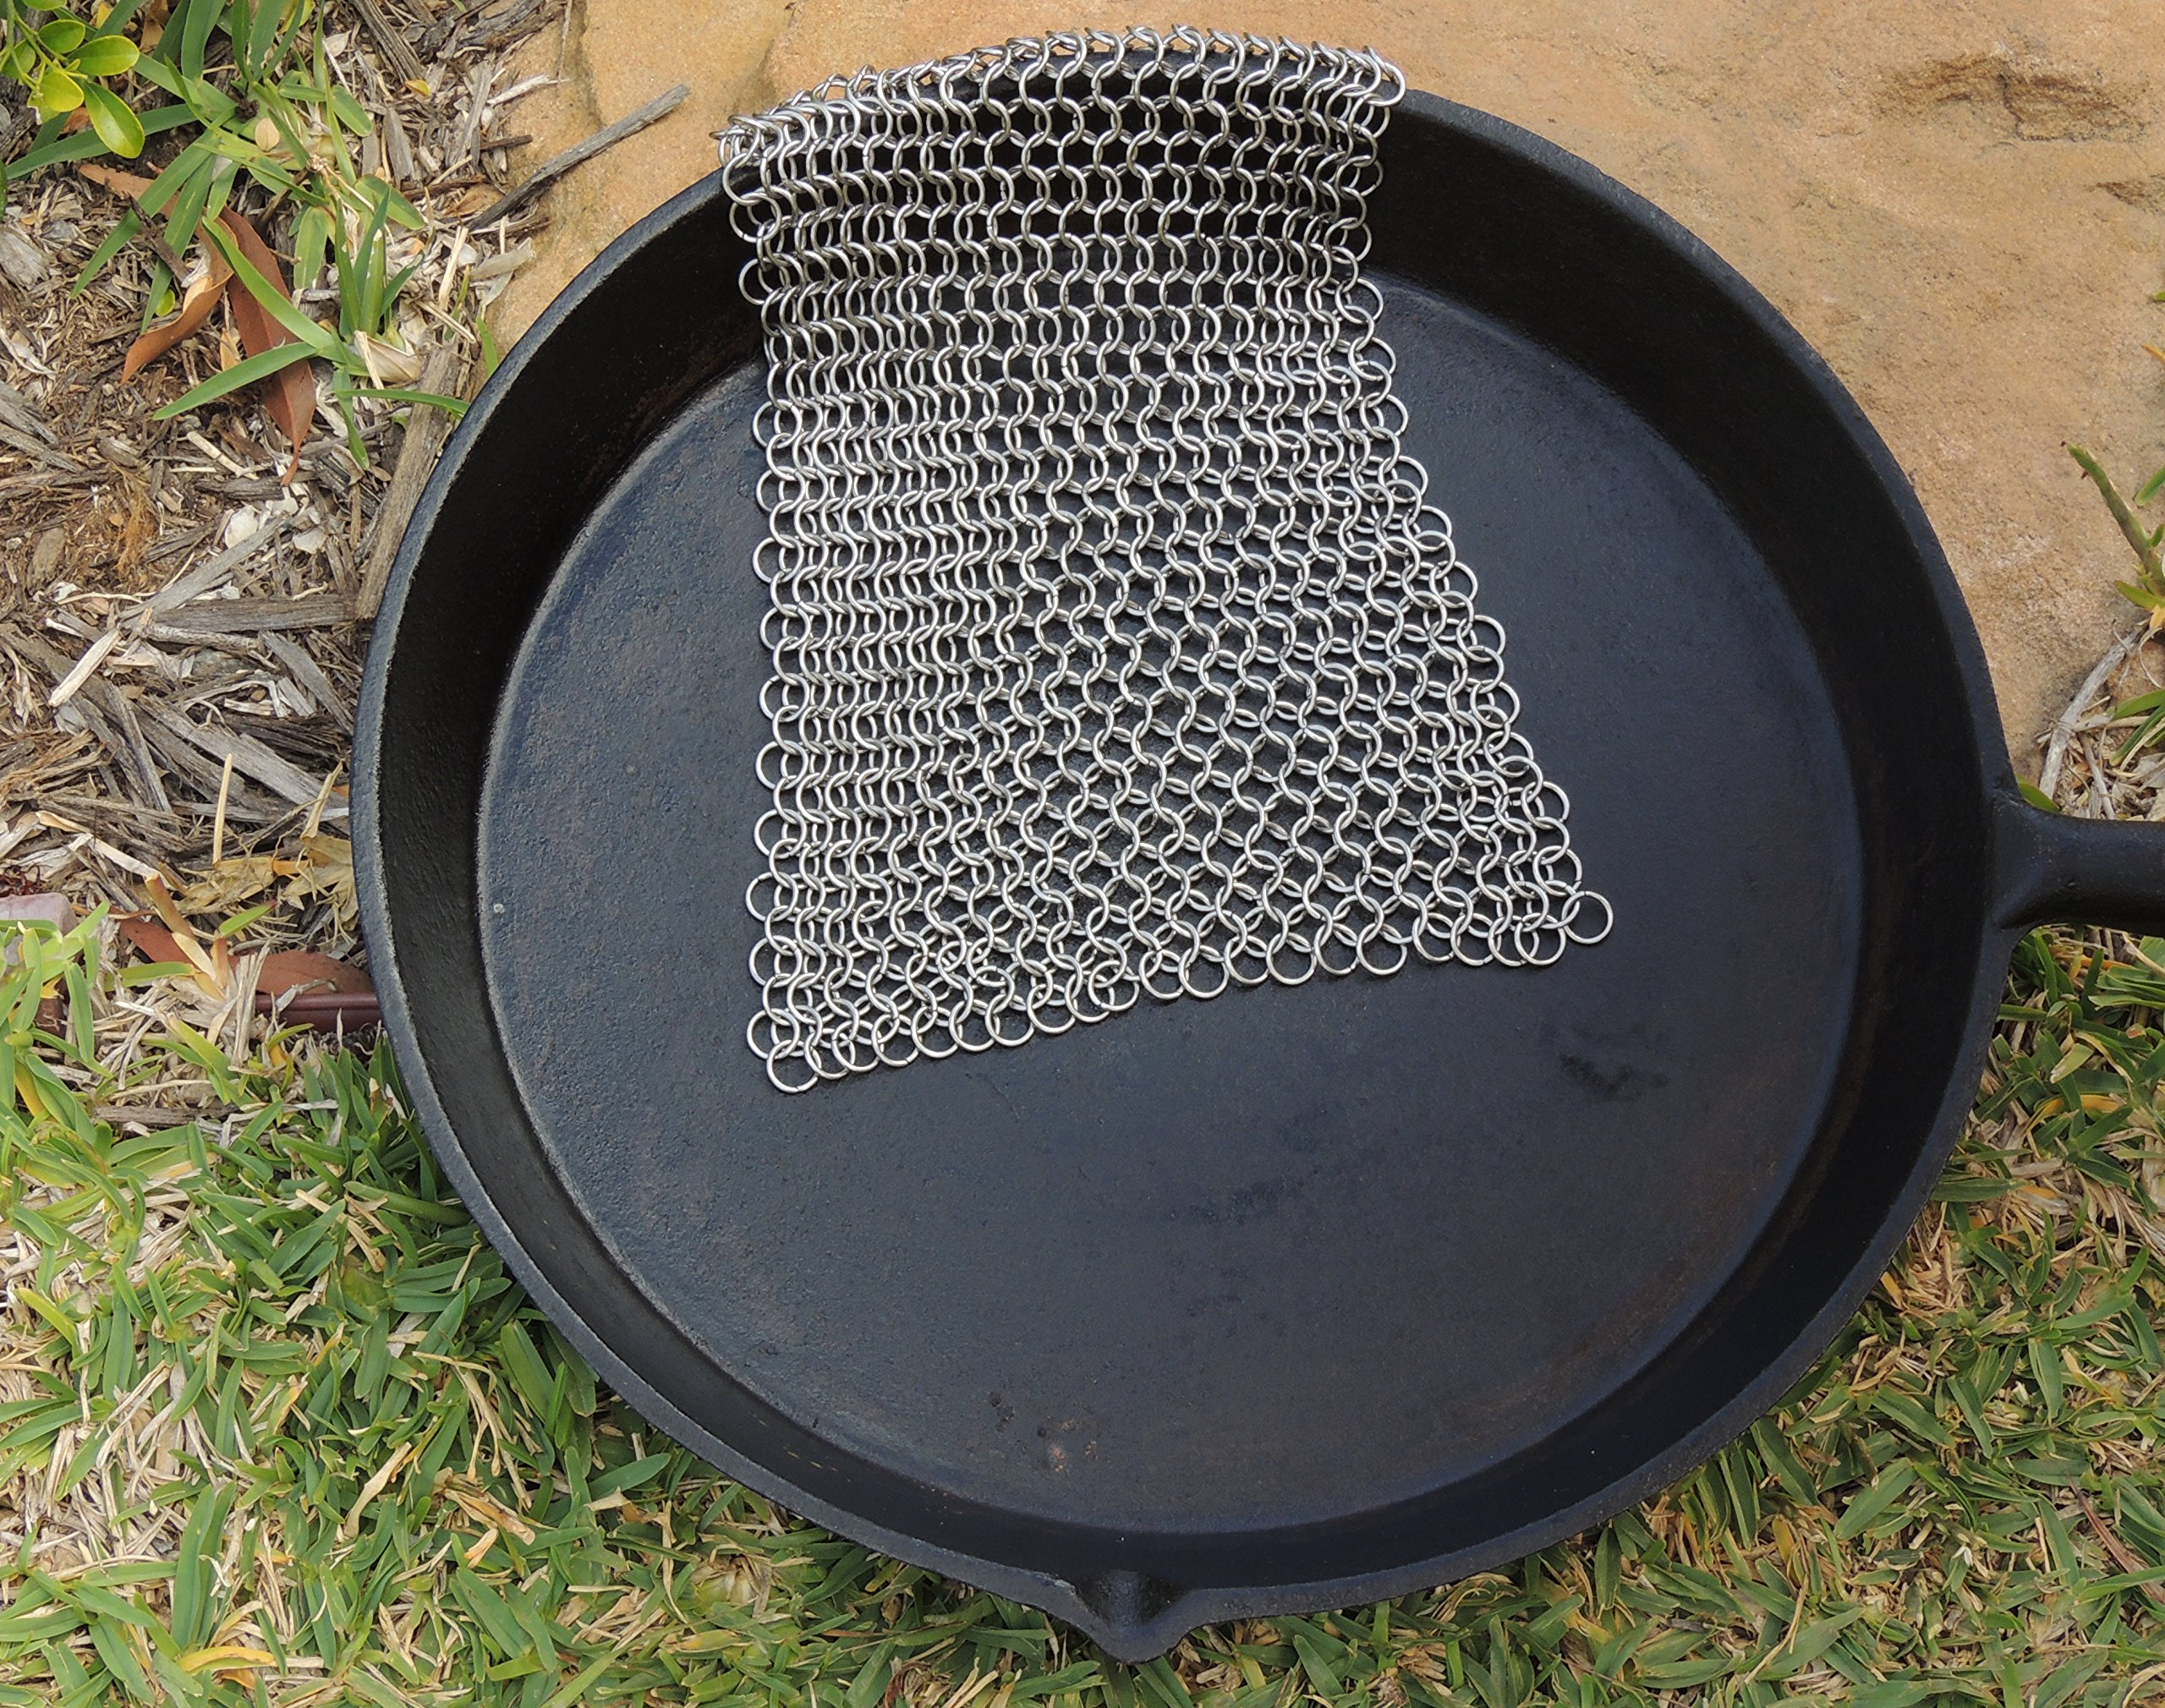 Cast Iron Cleaner and Scrubber by Küche Chef. XL 8x8 Inch Premium 316 Stainless Steel Chainmail Scrubber by Kuche Chef (Image #7)